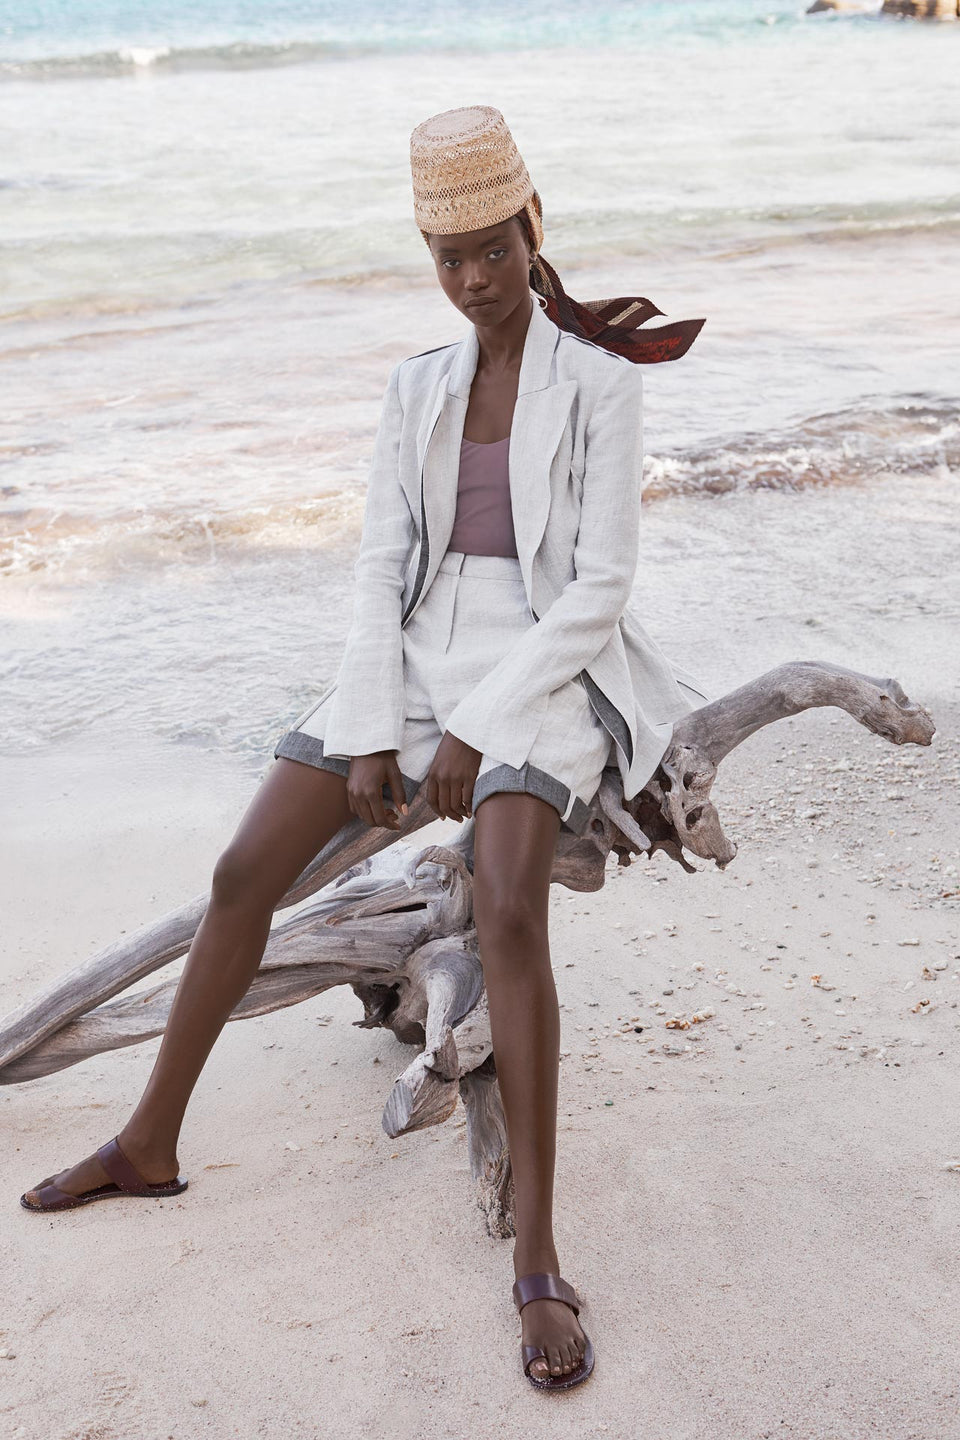 CARL KAPP SS2020 collection in Seychelles Six Senses Zil Pasyon | Morne jacket, Anse shorts